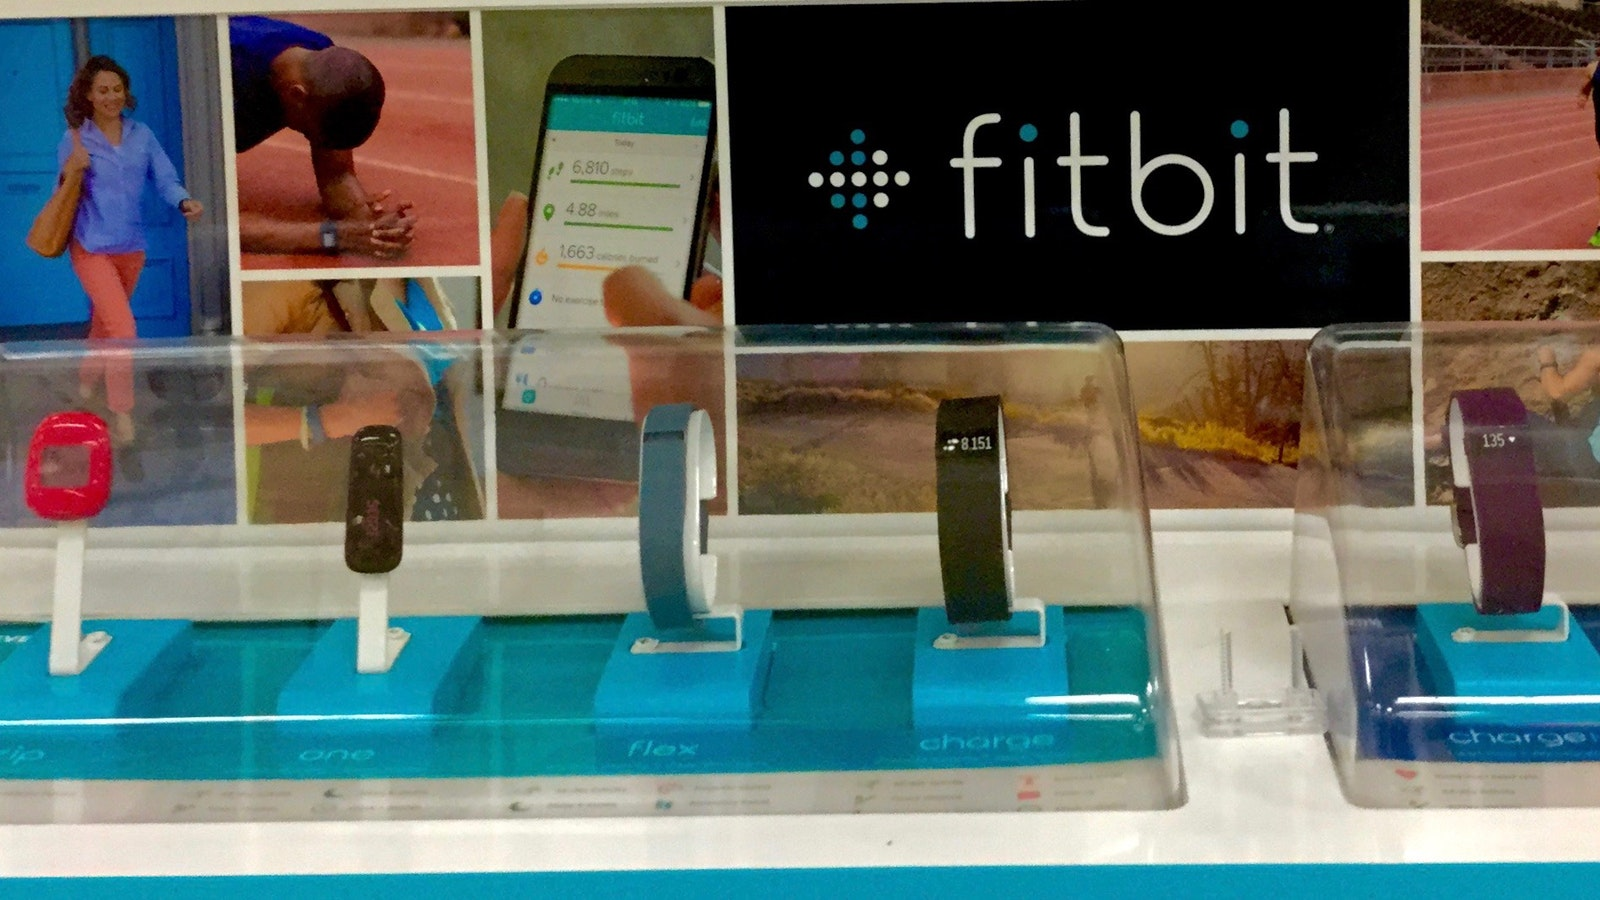 Fitbit products on display. Photo by Flickr/Mike Mozart.